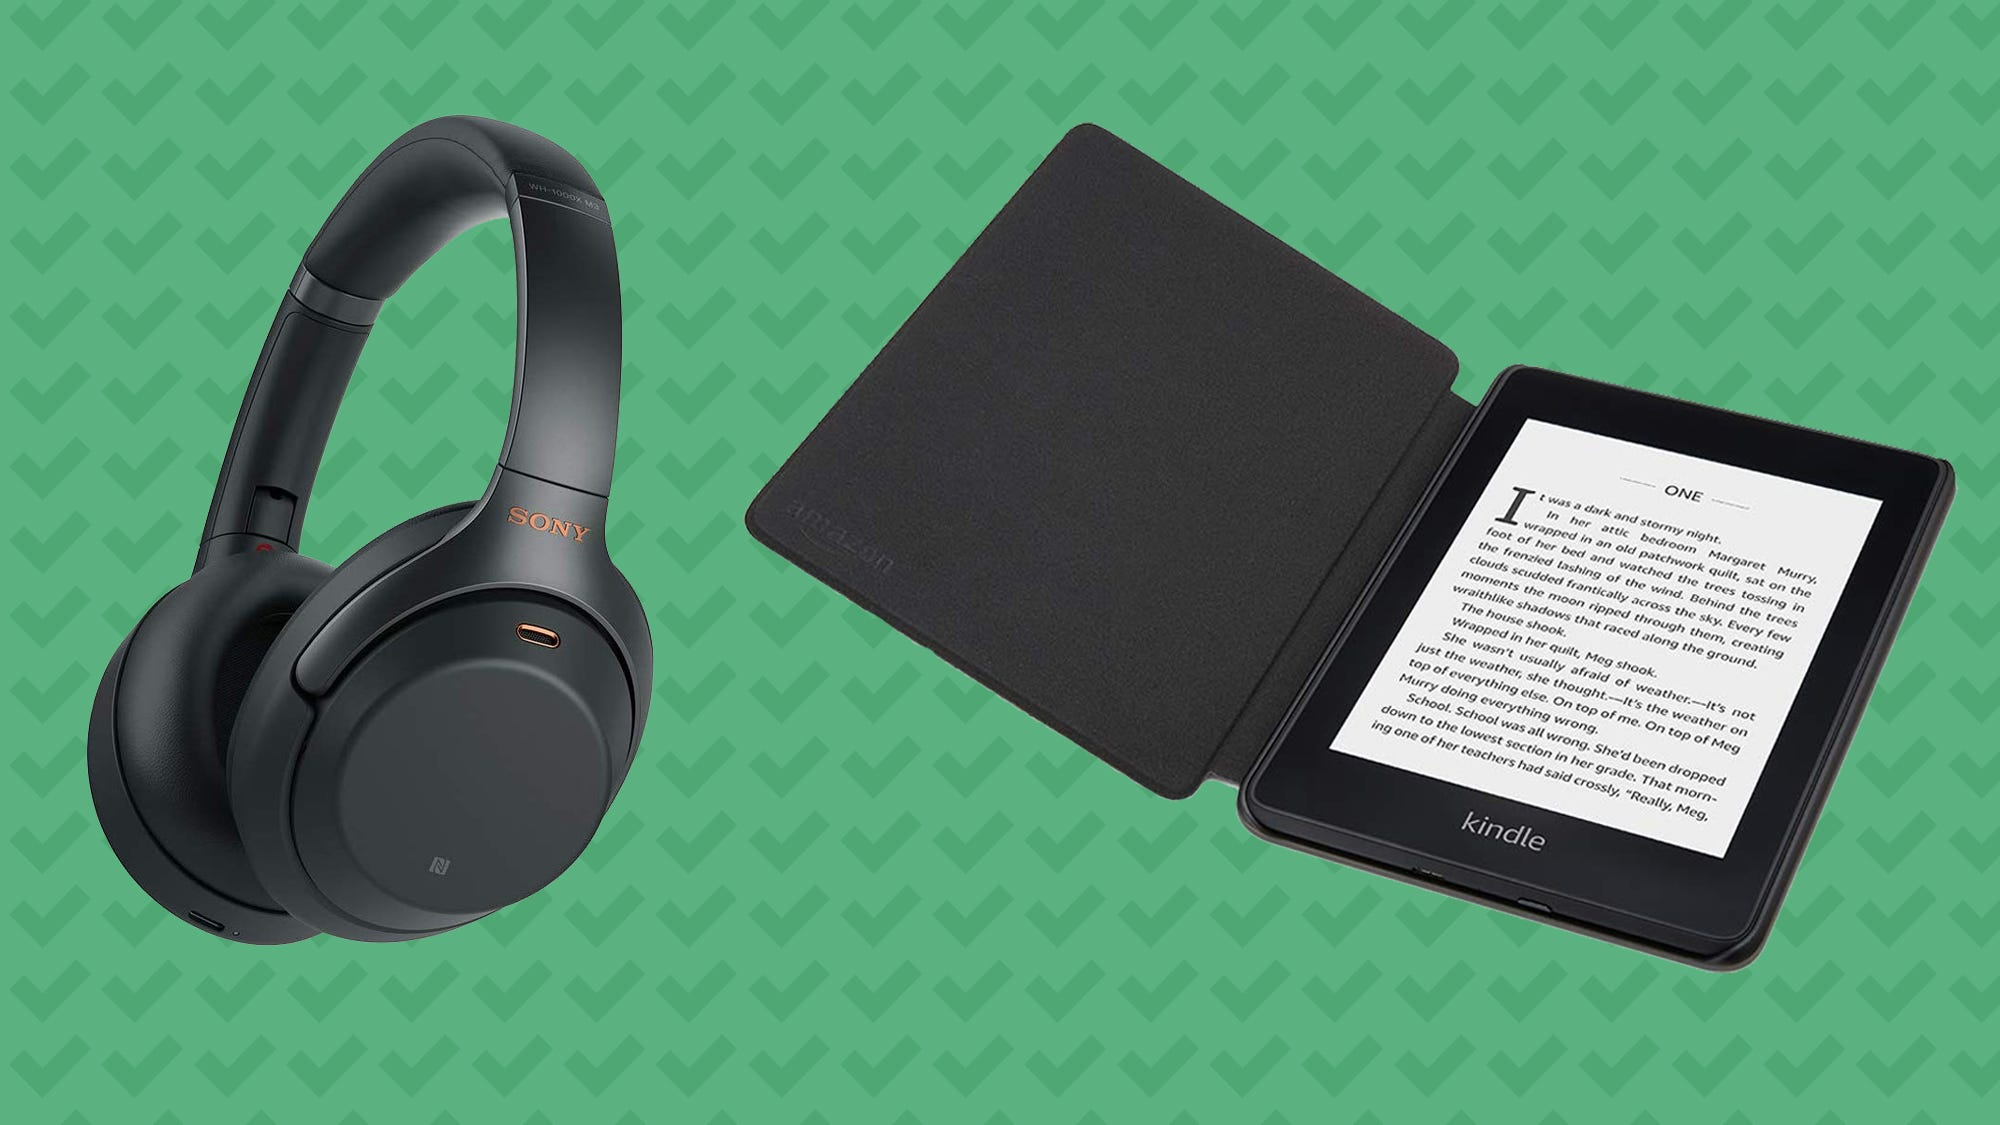 The Best Cyber Monday Deals of 2019